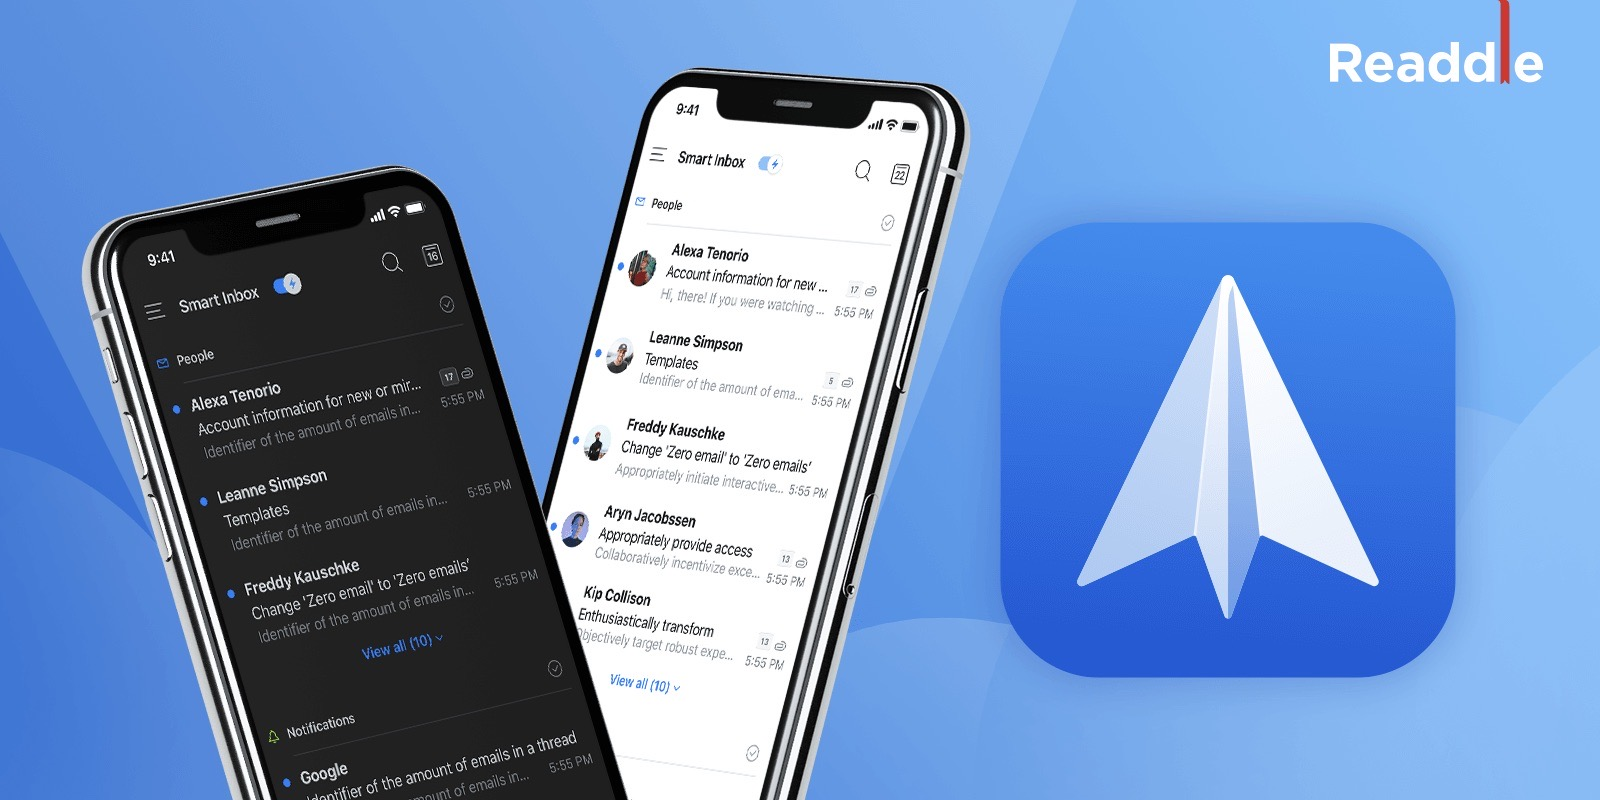 Spark email for iOS gets overhaul with new design, inbox avatars, Dark Mode, multiwindow iPad support